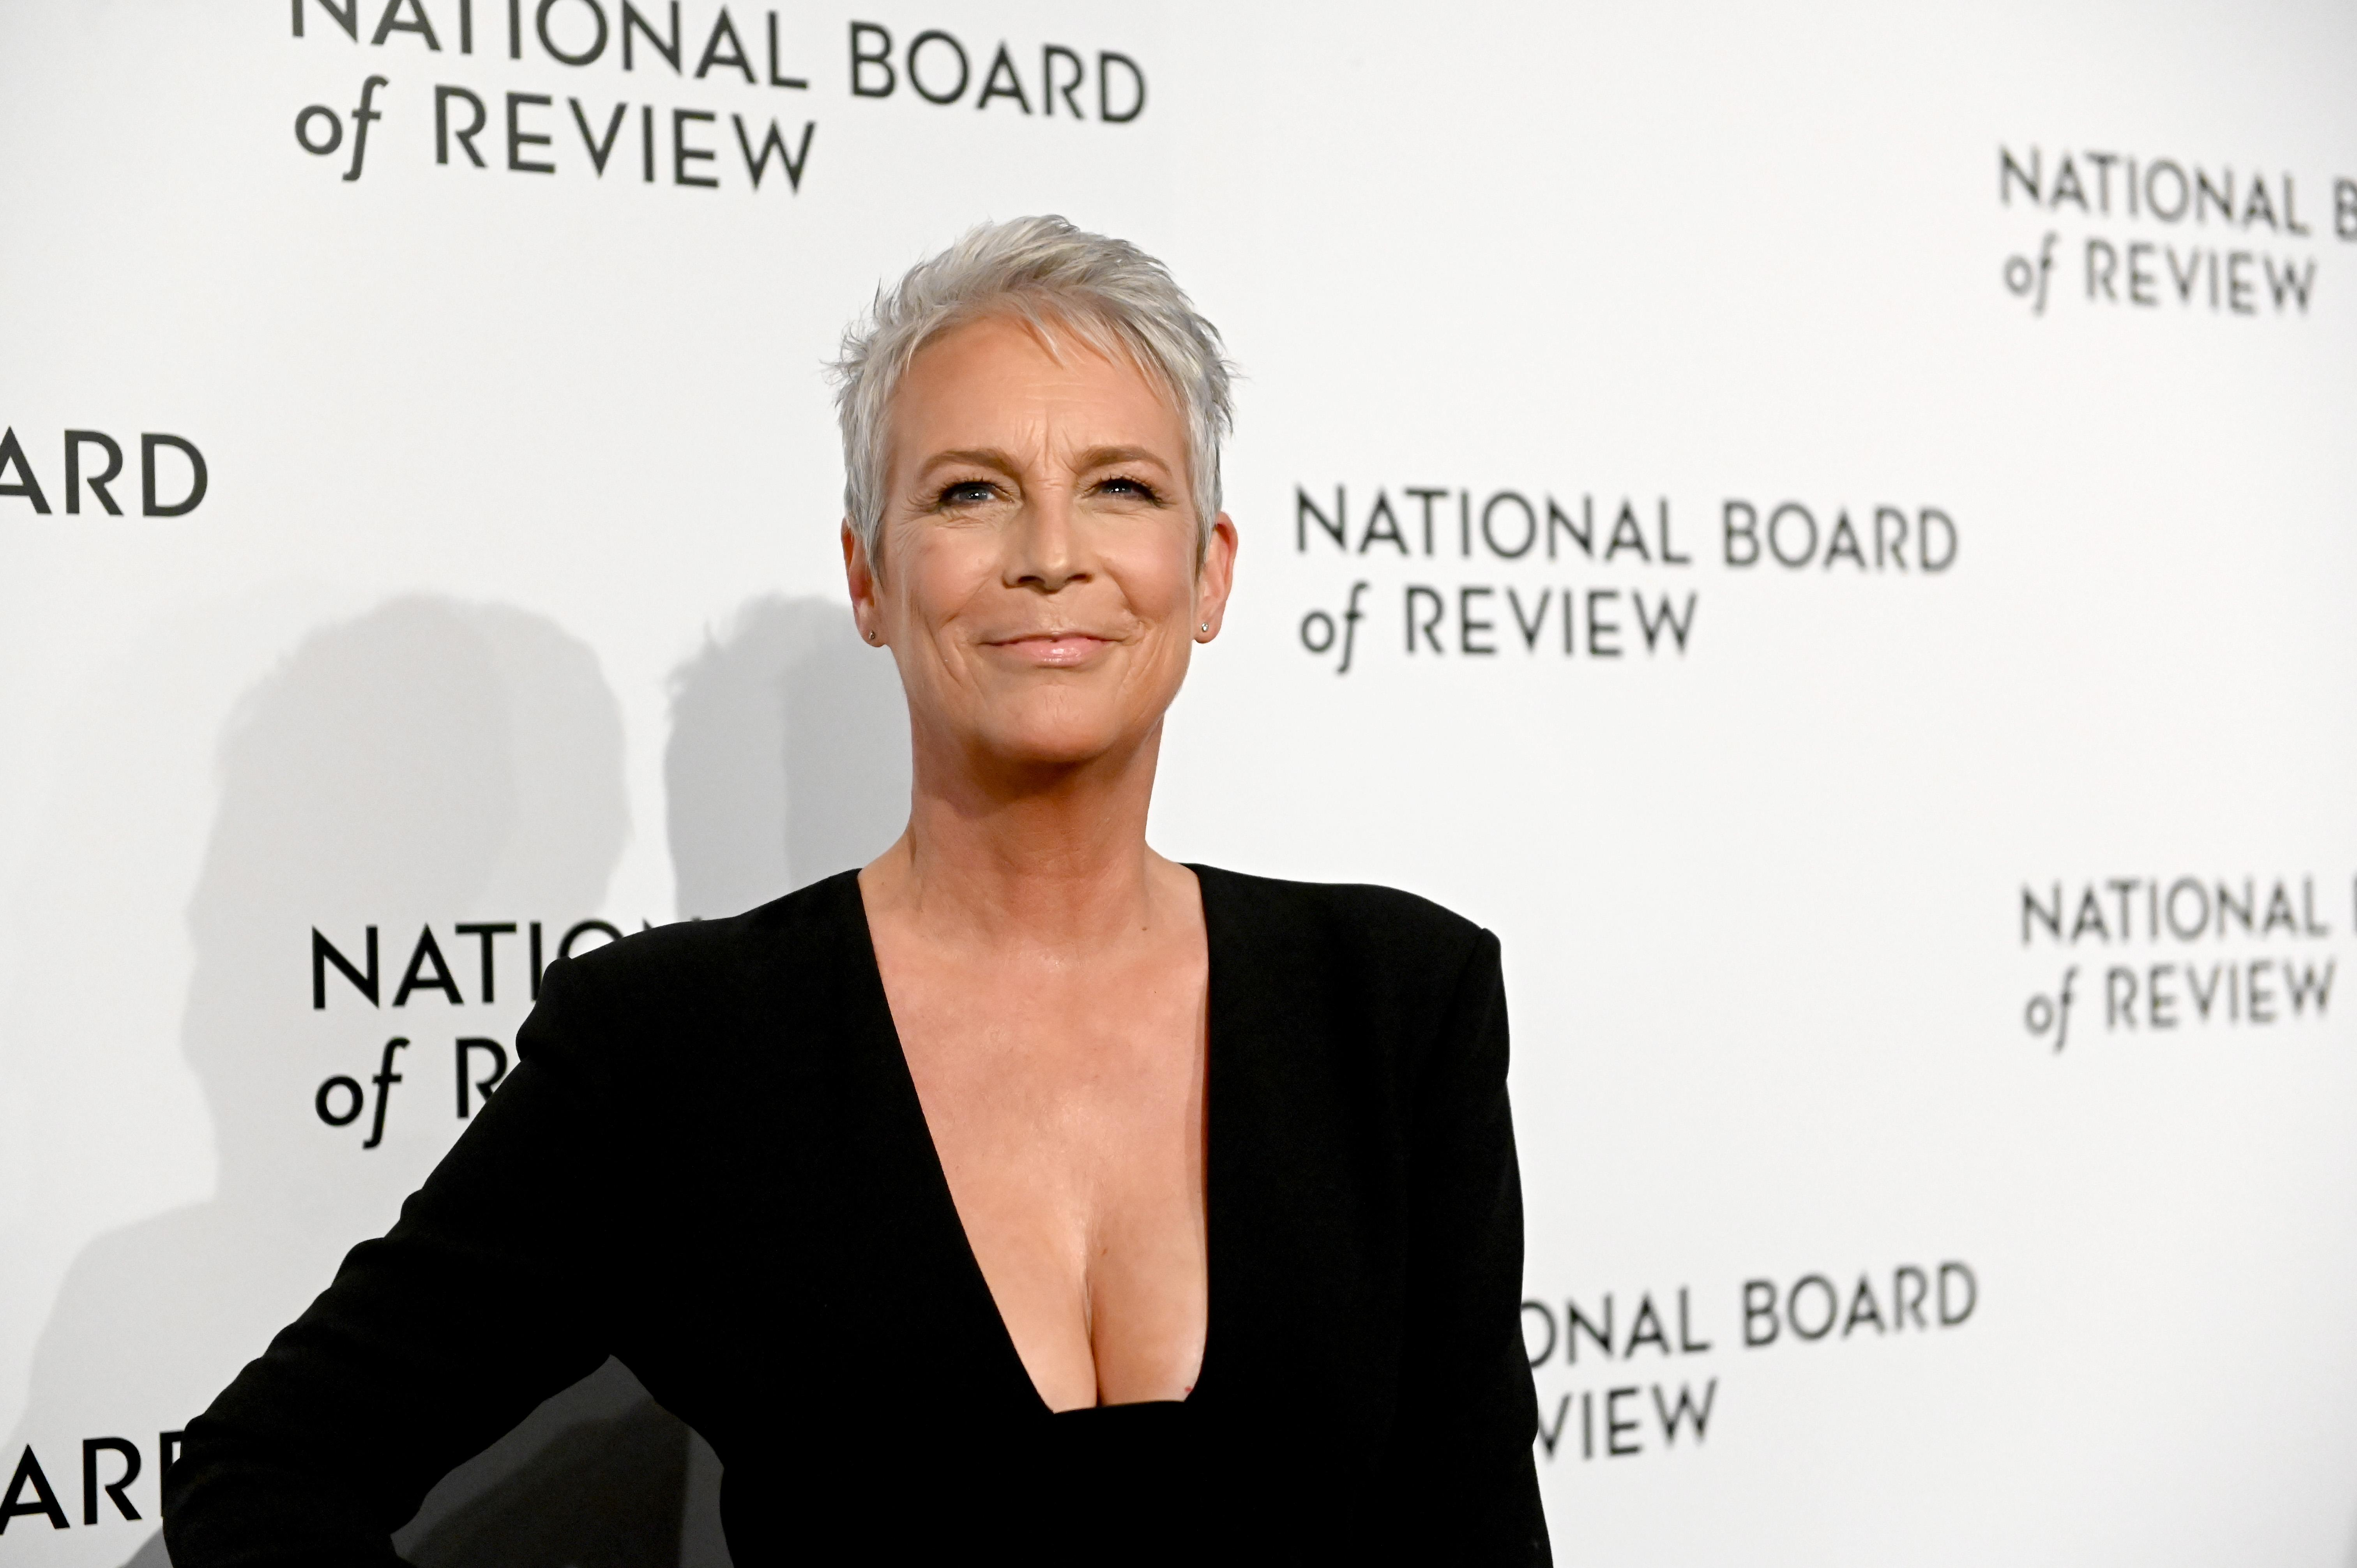 Jamie Lee Curtis and John Cleese reunite 32 years after 'A Fish Called Wanda'